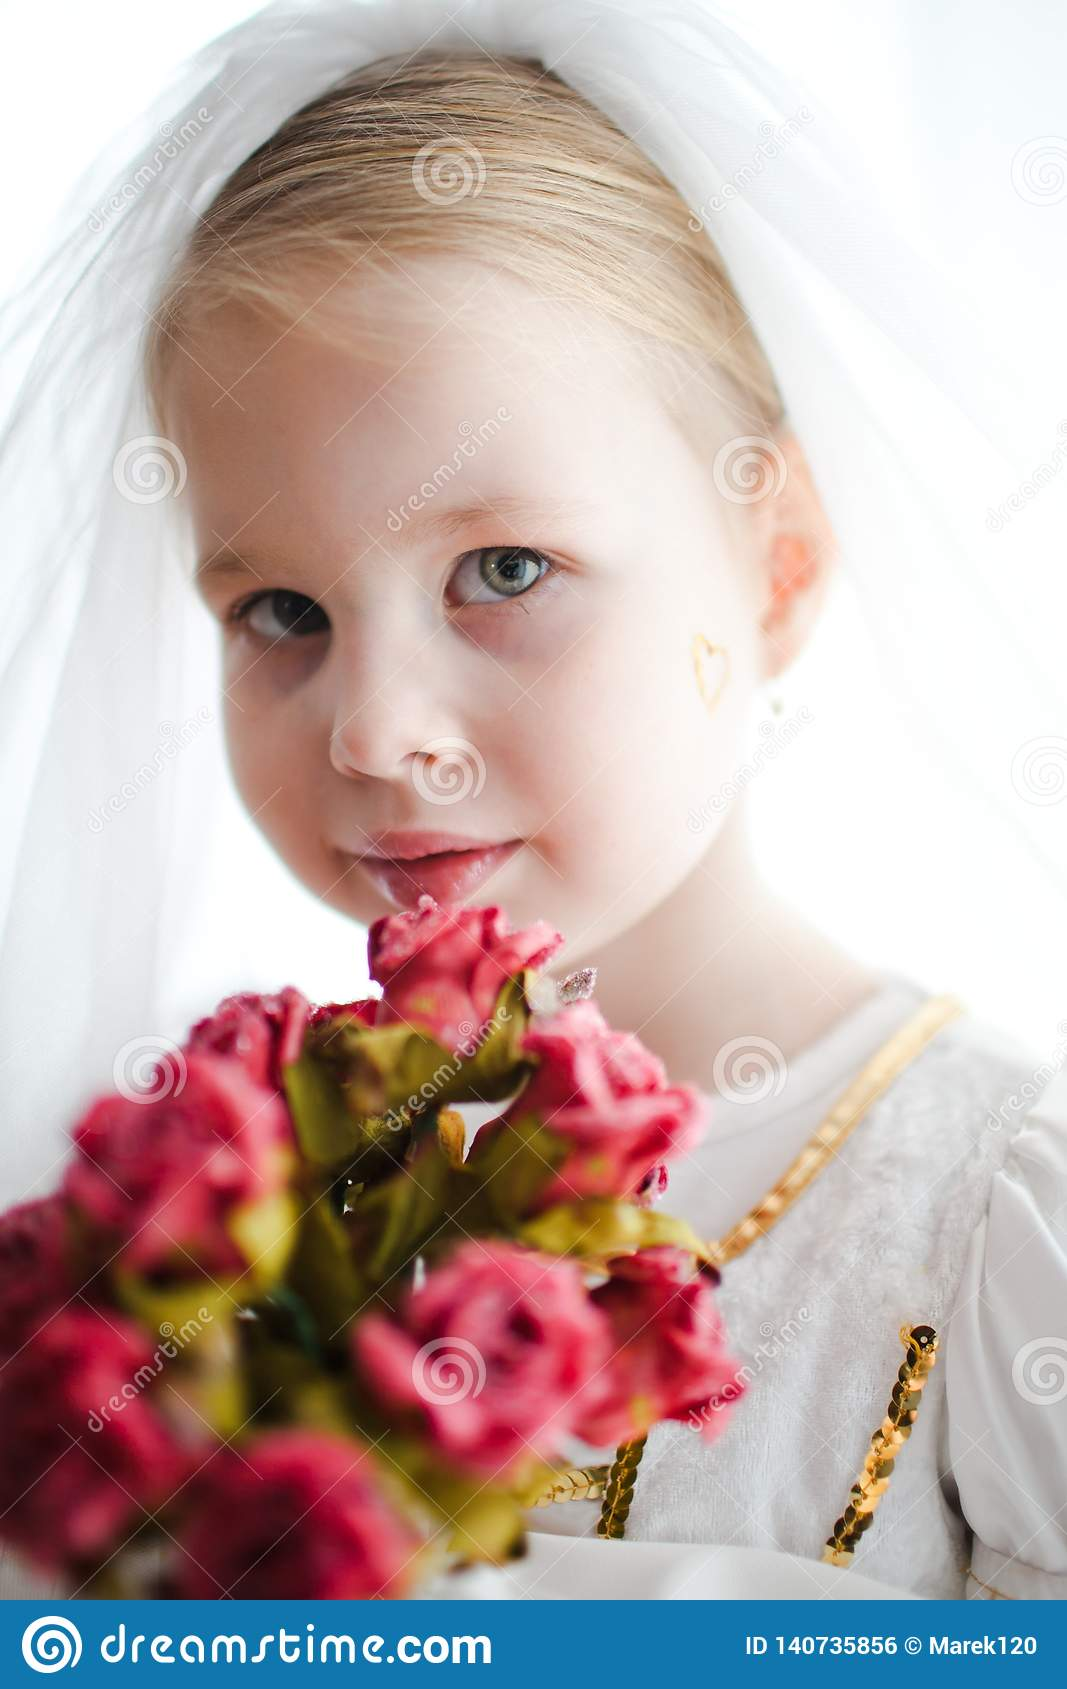 Child as s bride posing with bouquet - small golden heart on cheek